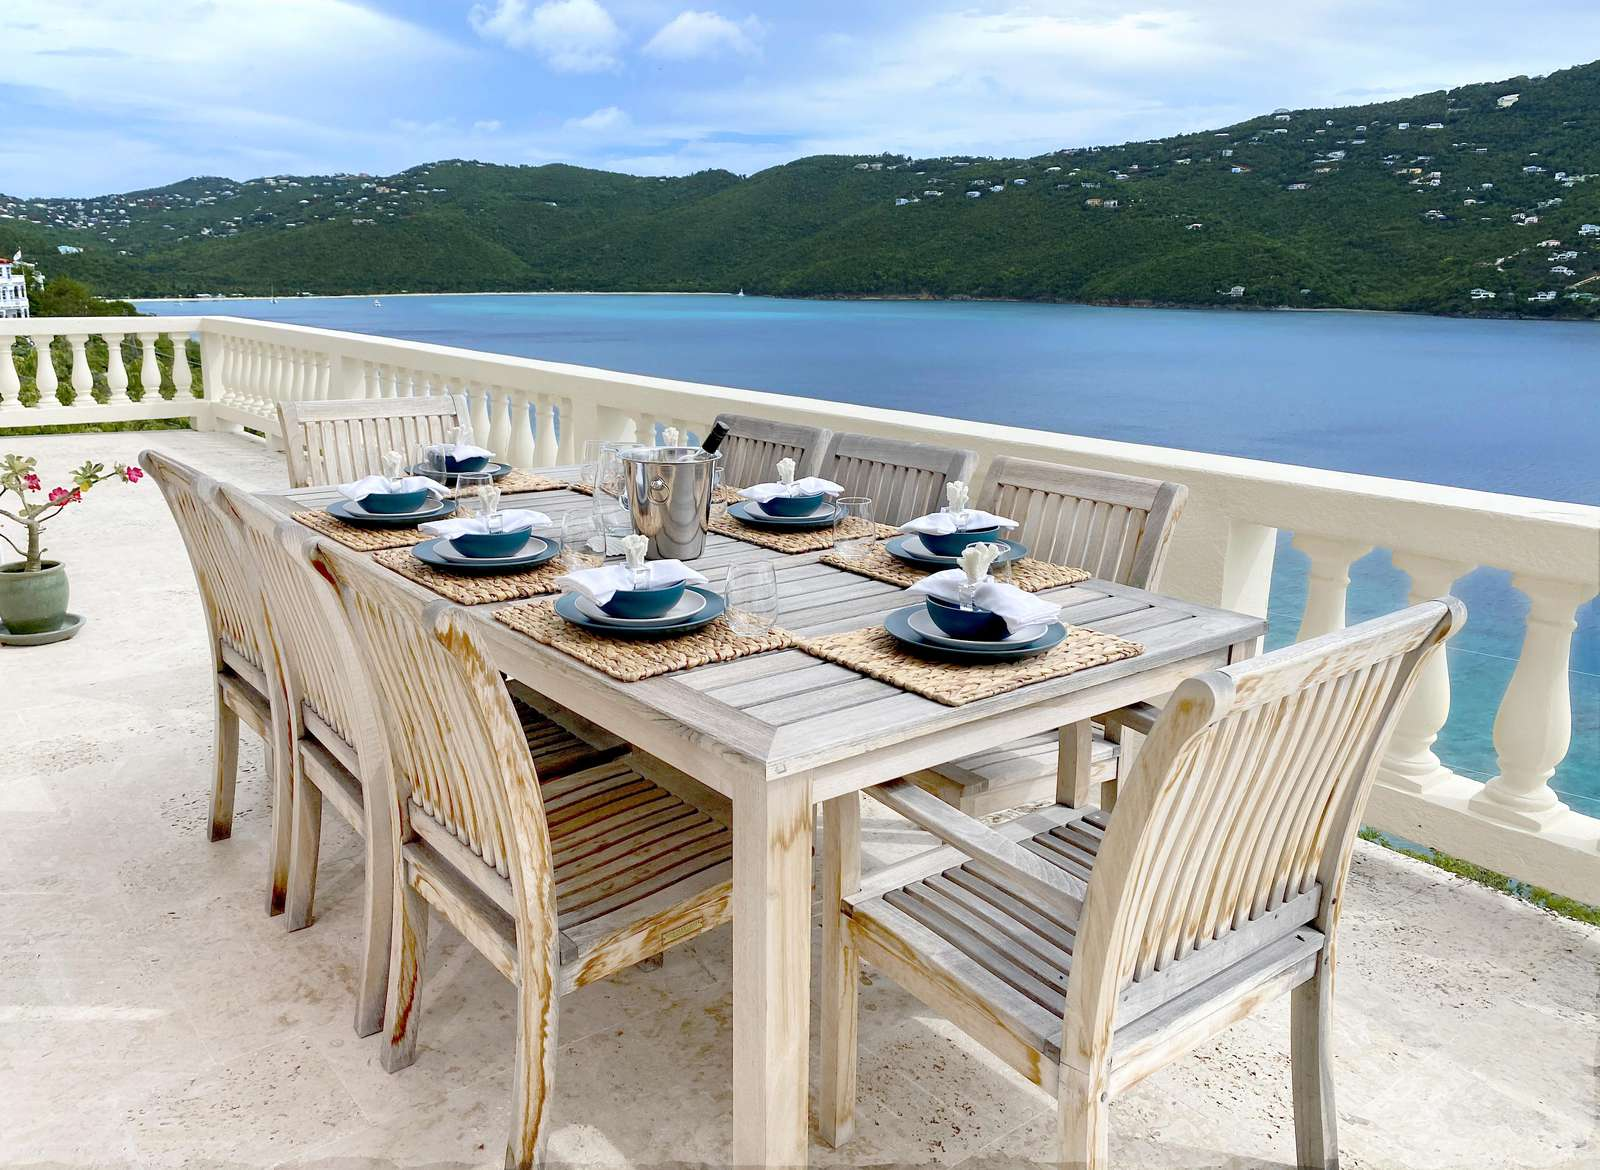 Al fresco dining set for eight on the upper terrace at Pallina with sweeping views of Magens Bay